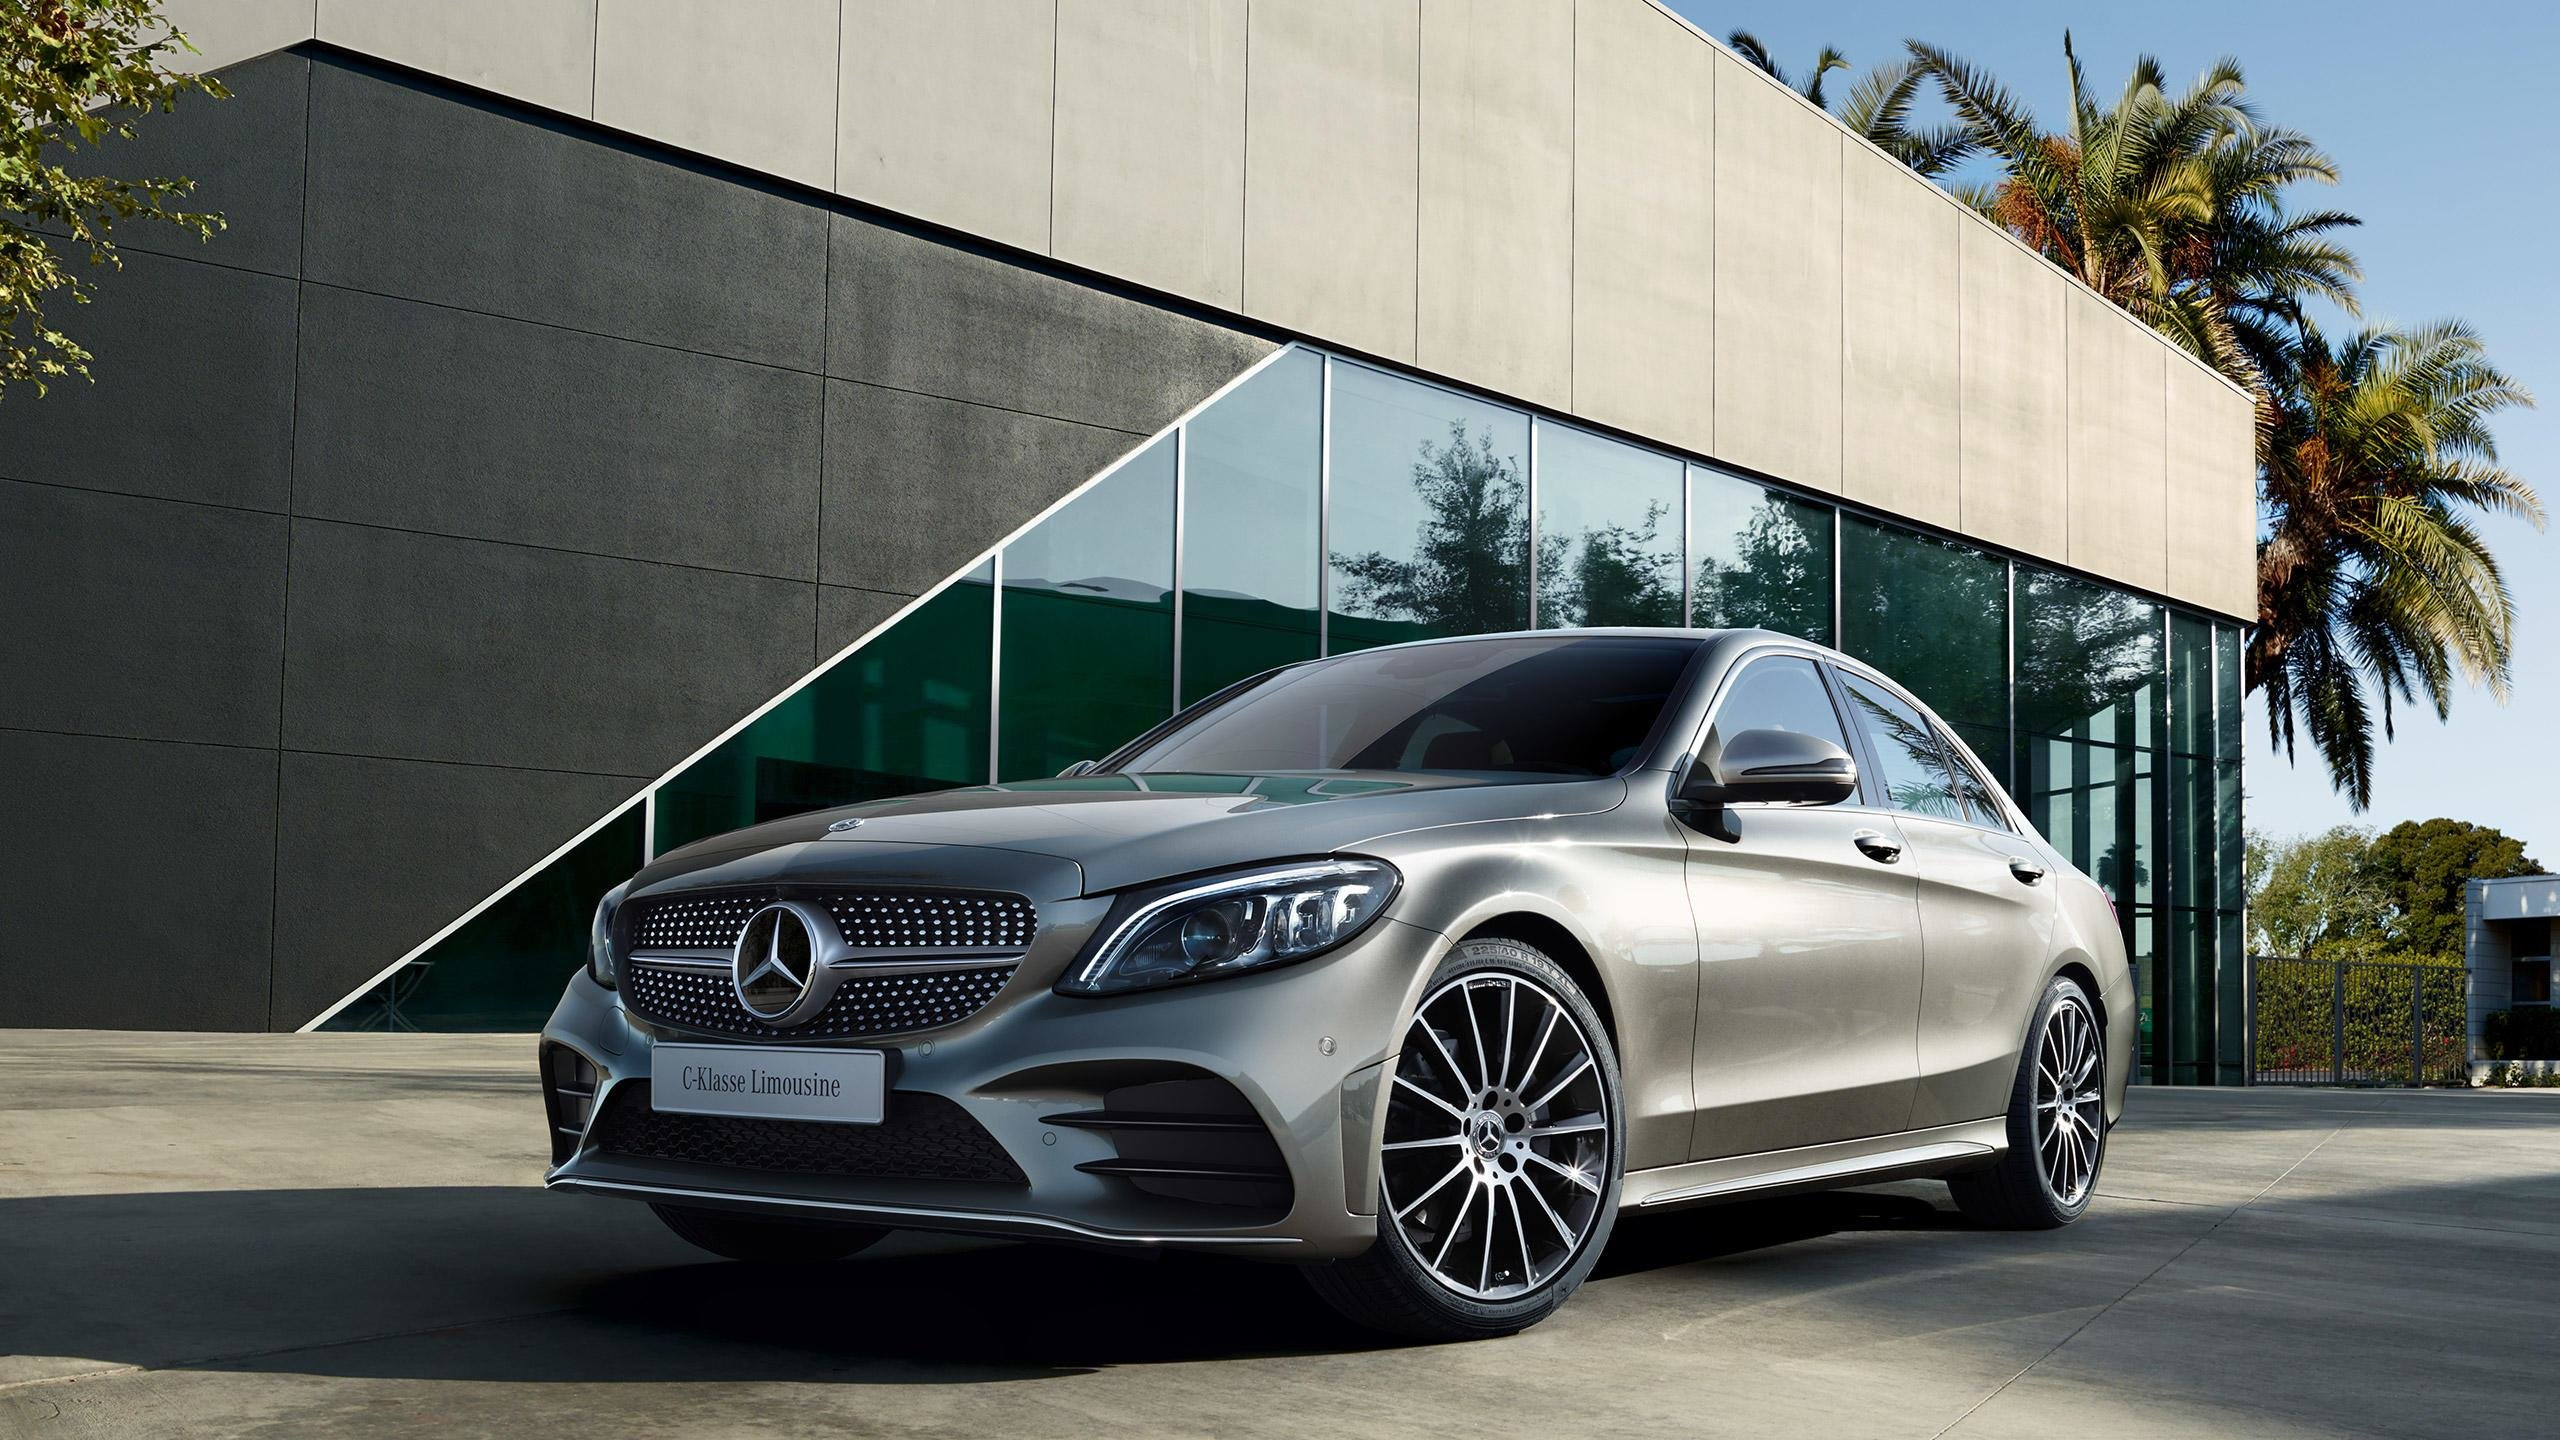 Latest Mercedes Benz C Class News Articles And Videos Free Download